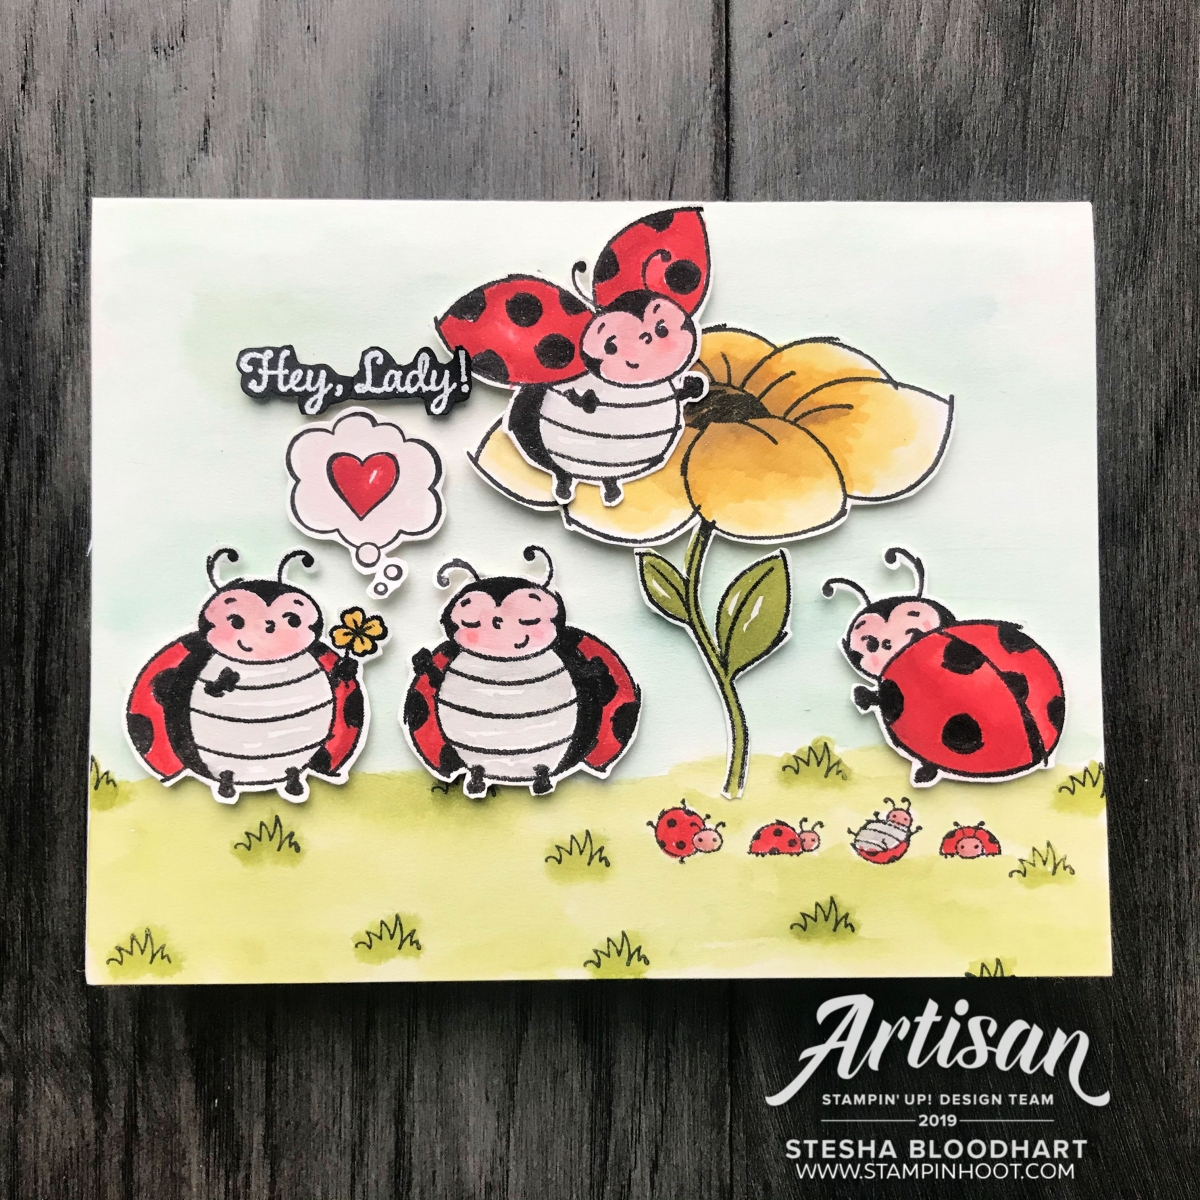 Little Ladybug Cling Stamp Set - Sale-a-Bration - Stampin' Rewards Only - Free with $300 Order - Stesha Bloodhart, Stampin' Hoot! 2019 Artisan Design Team Blog Hop(1)